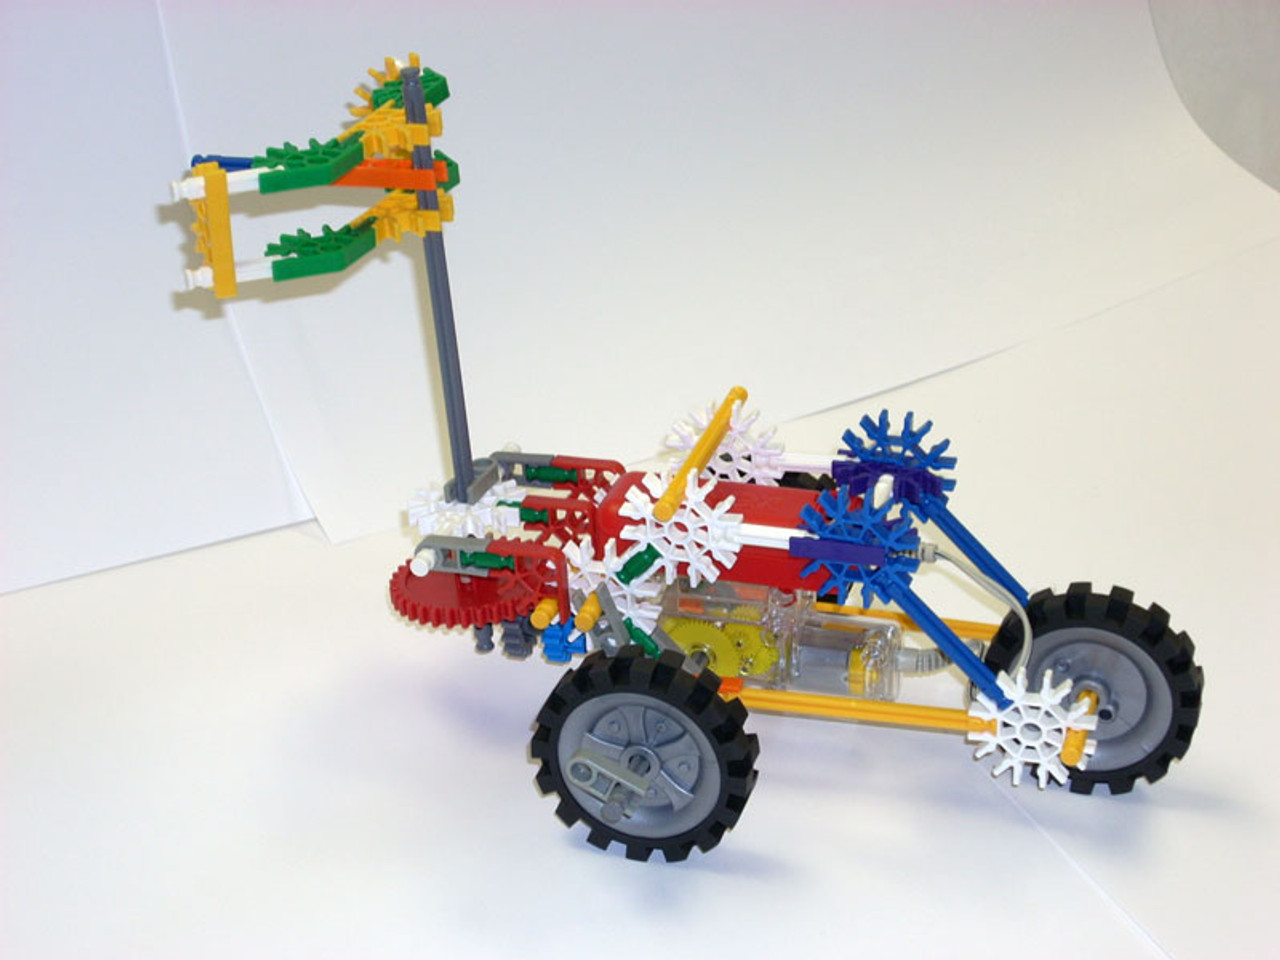 Mars Rover Challenge - rover